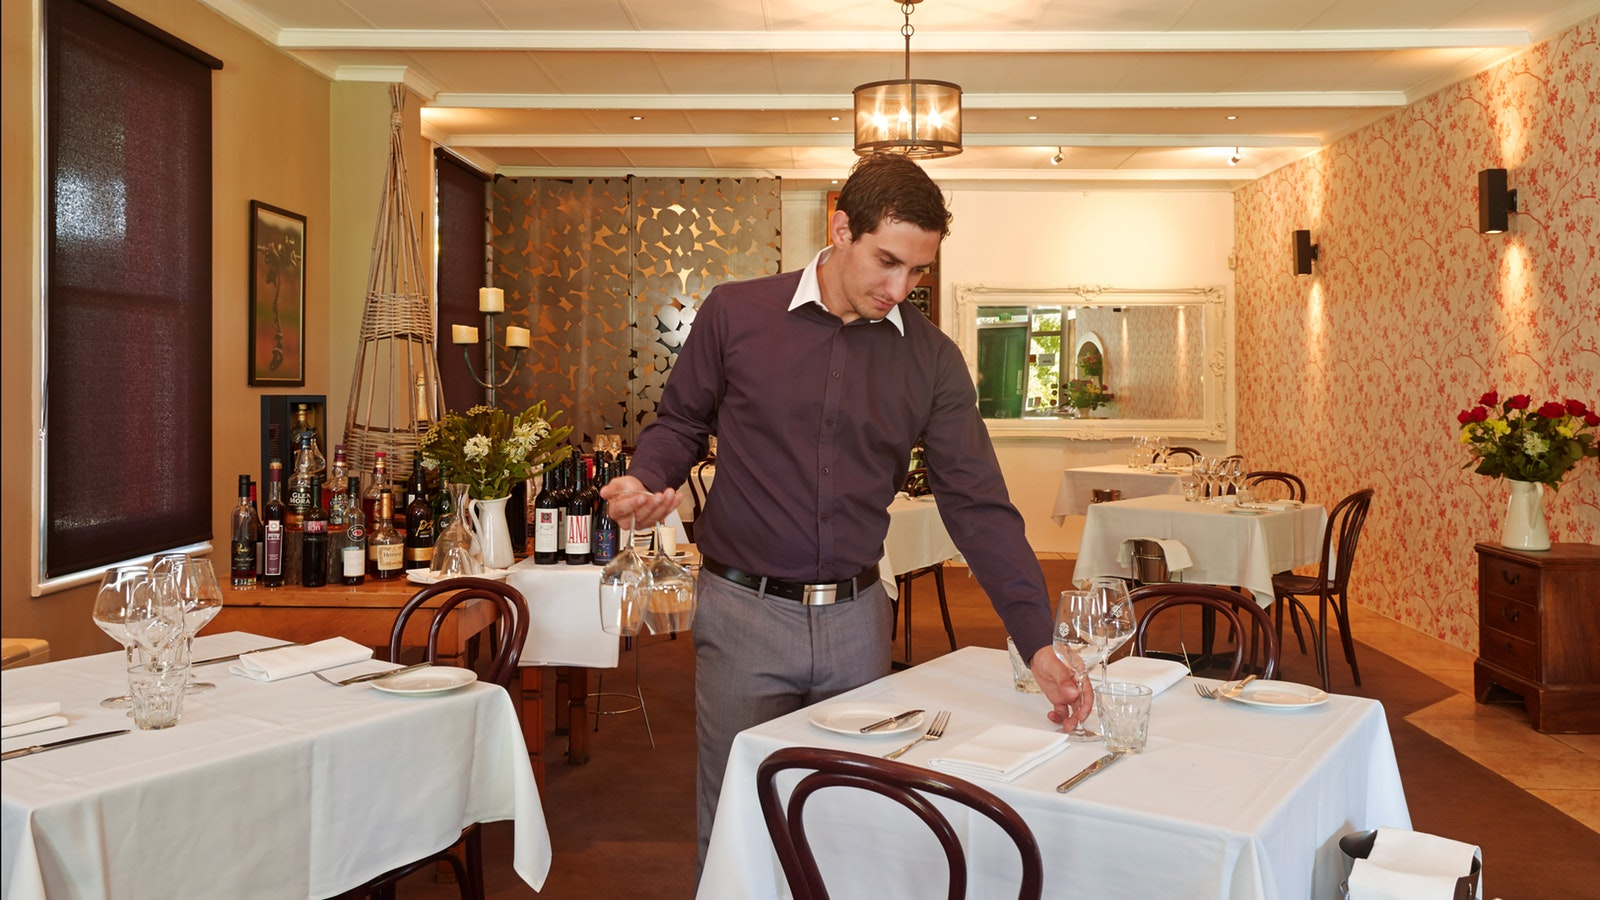 Head Sommelier, Fine Dining Lounge, Moutain View Hotel